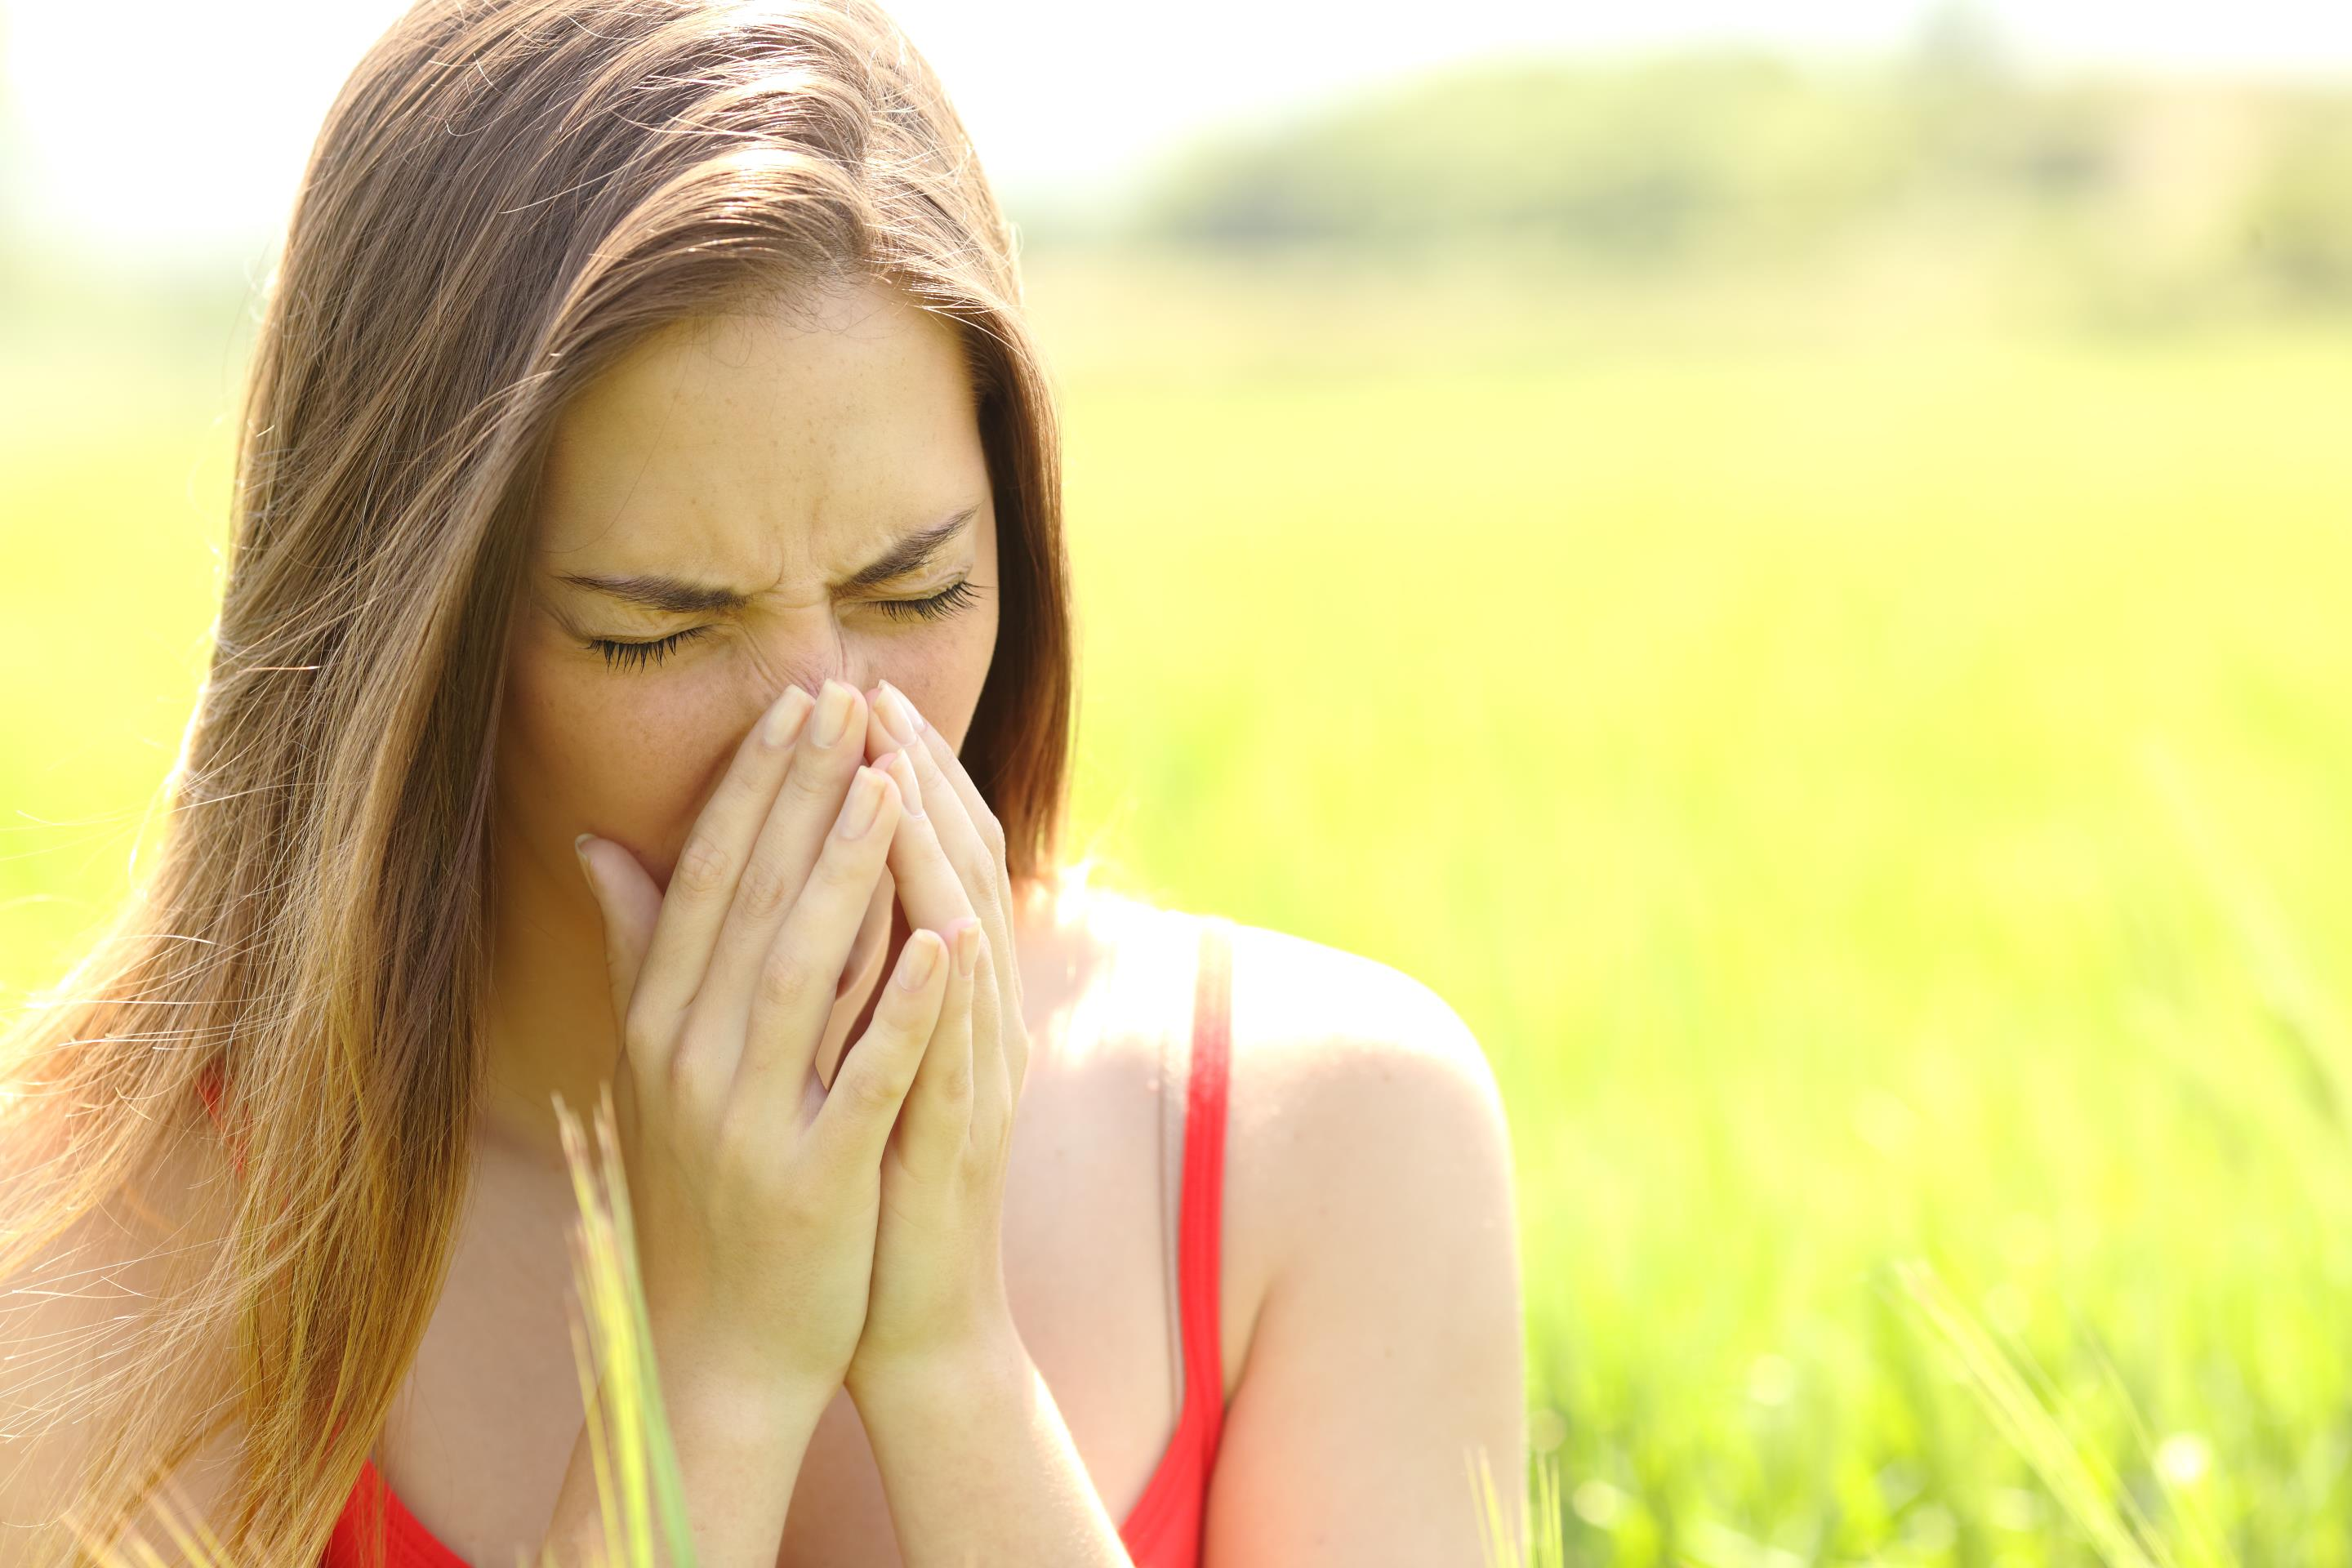 Woman with allergy coughing in a field.jpg